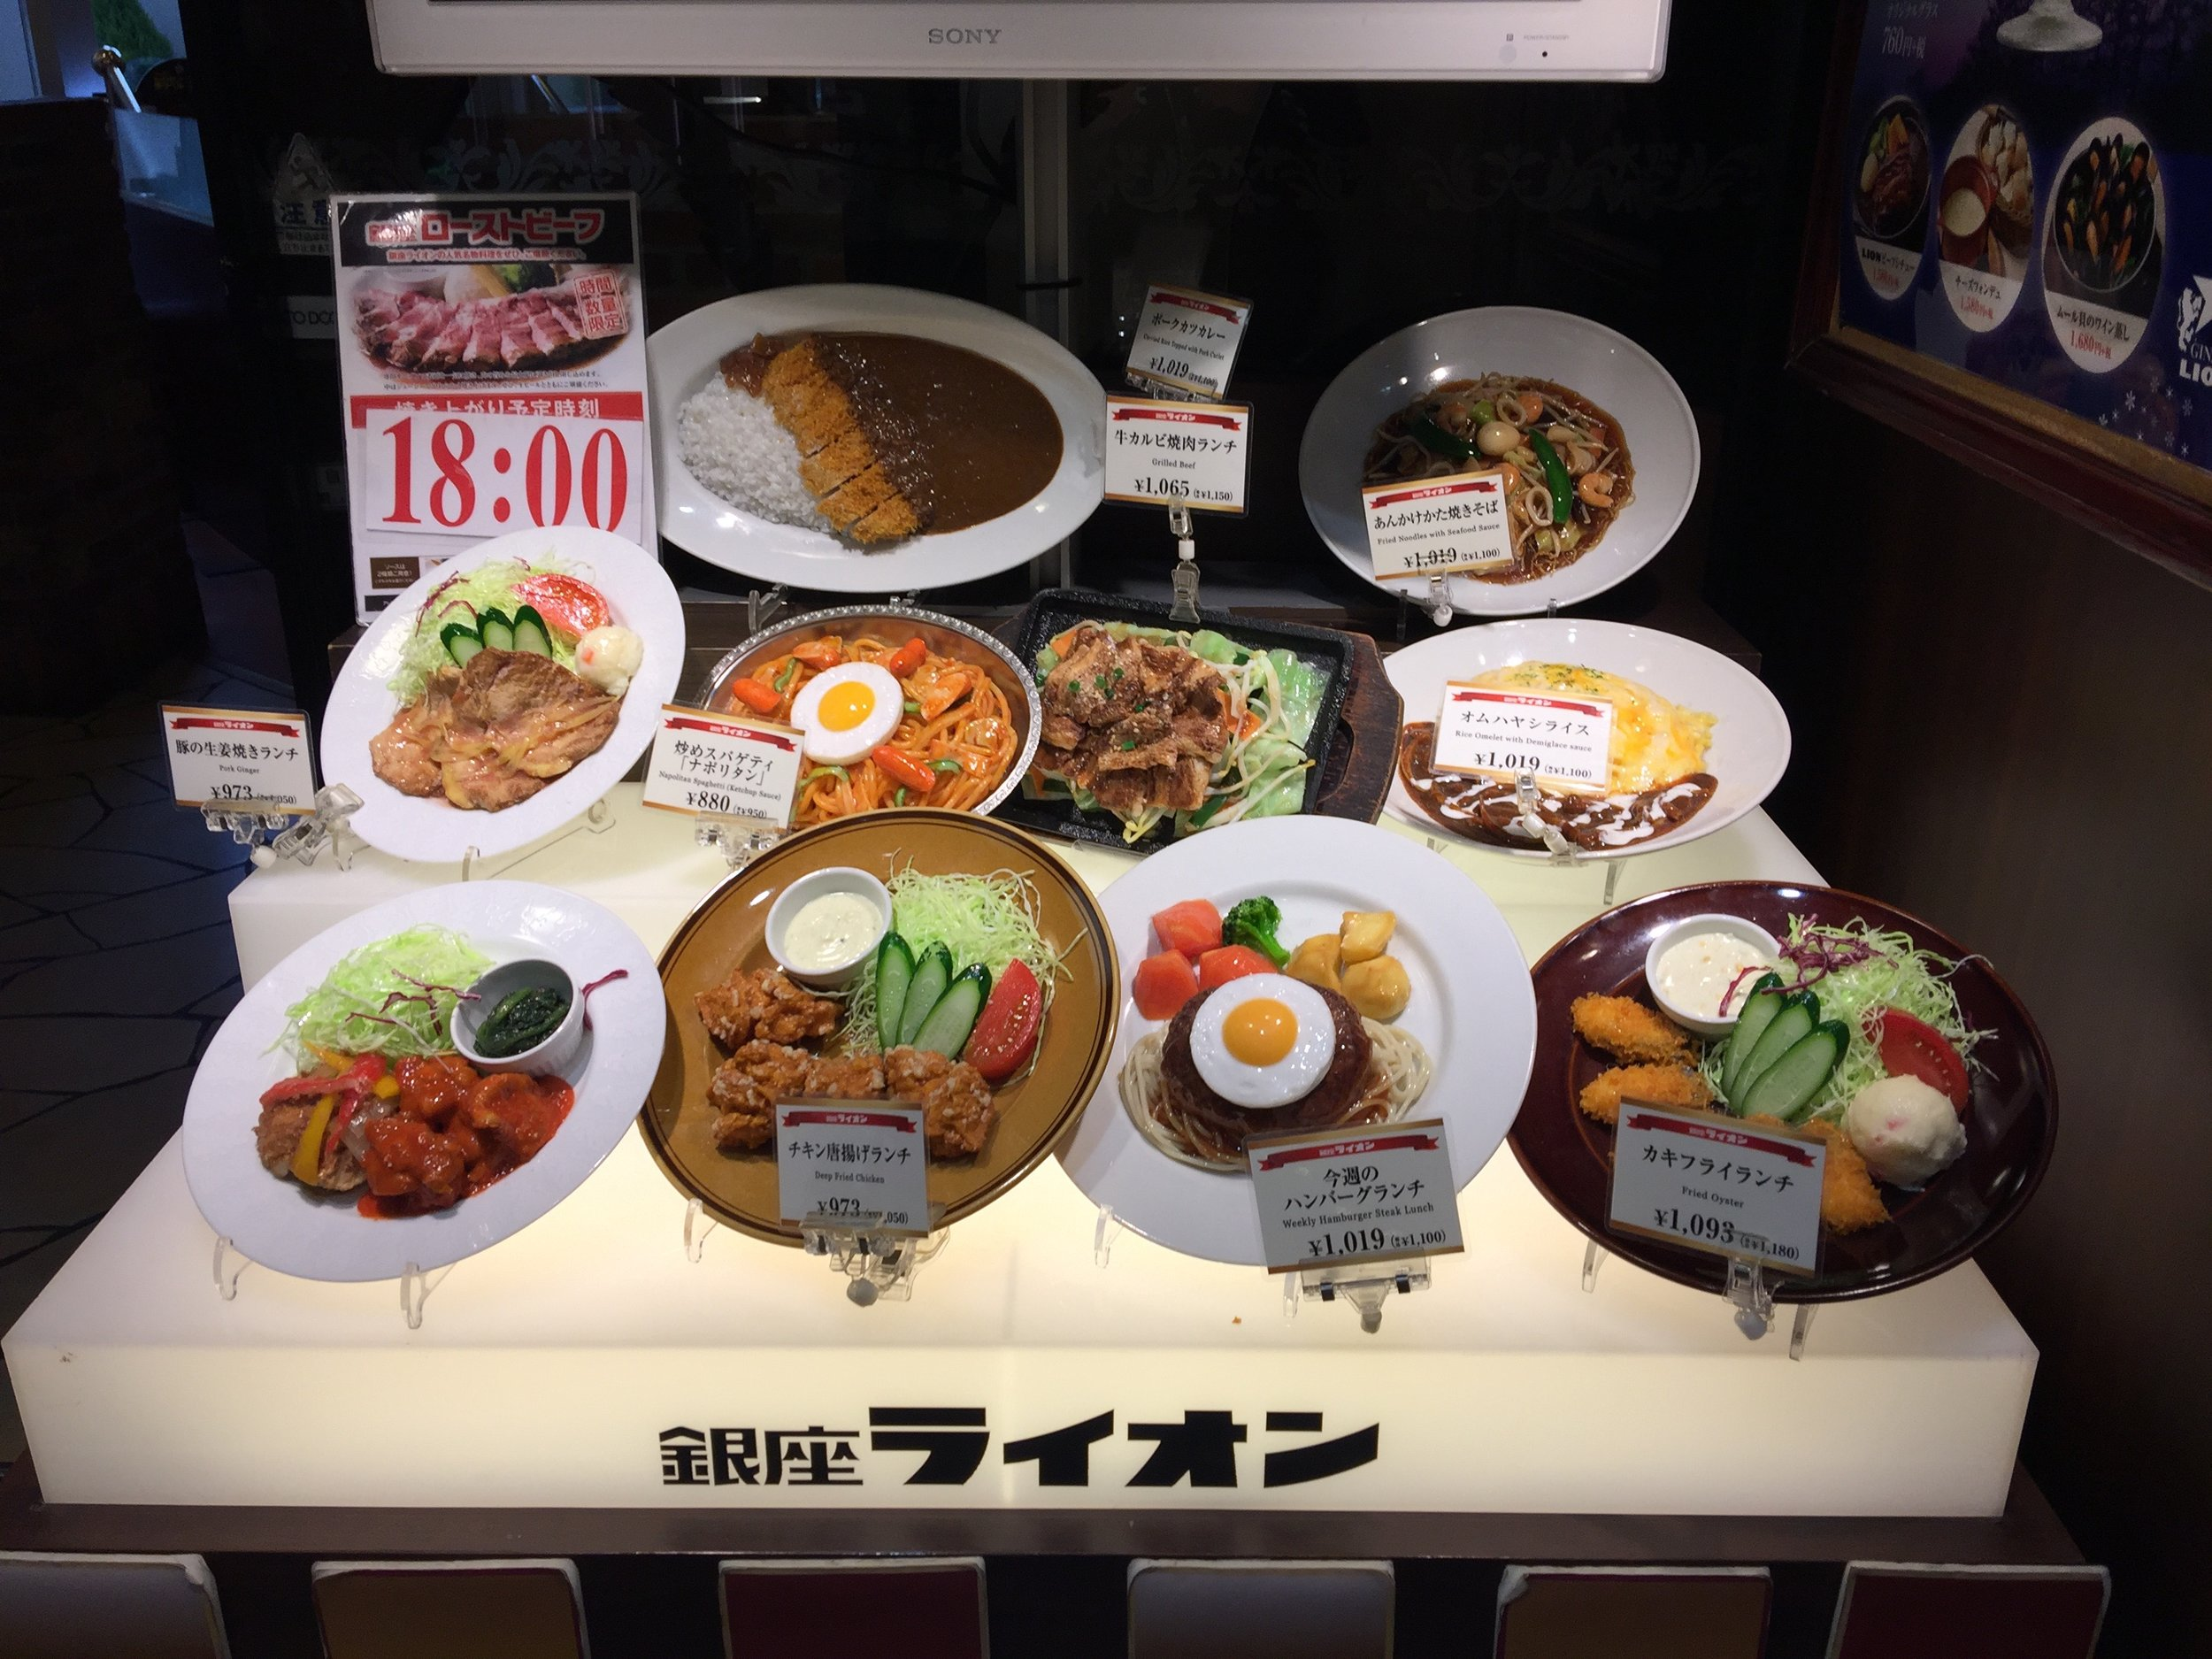 Food display in Shibuya